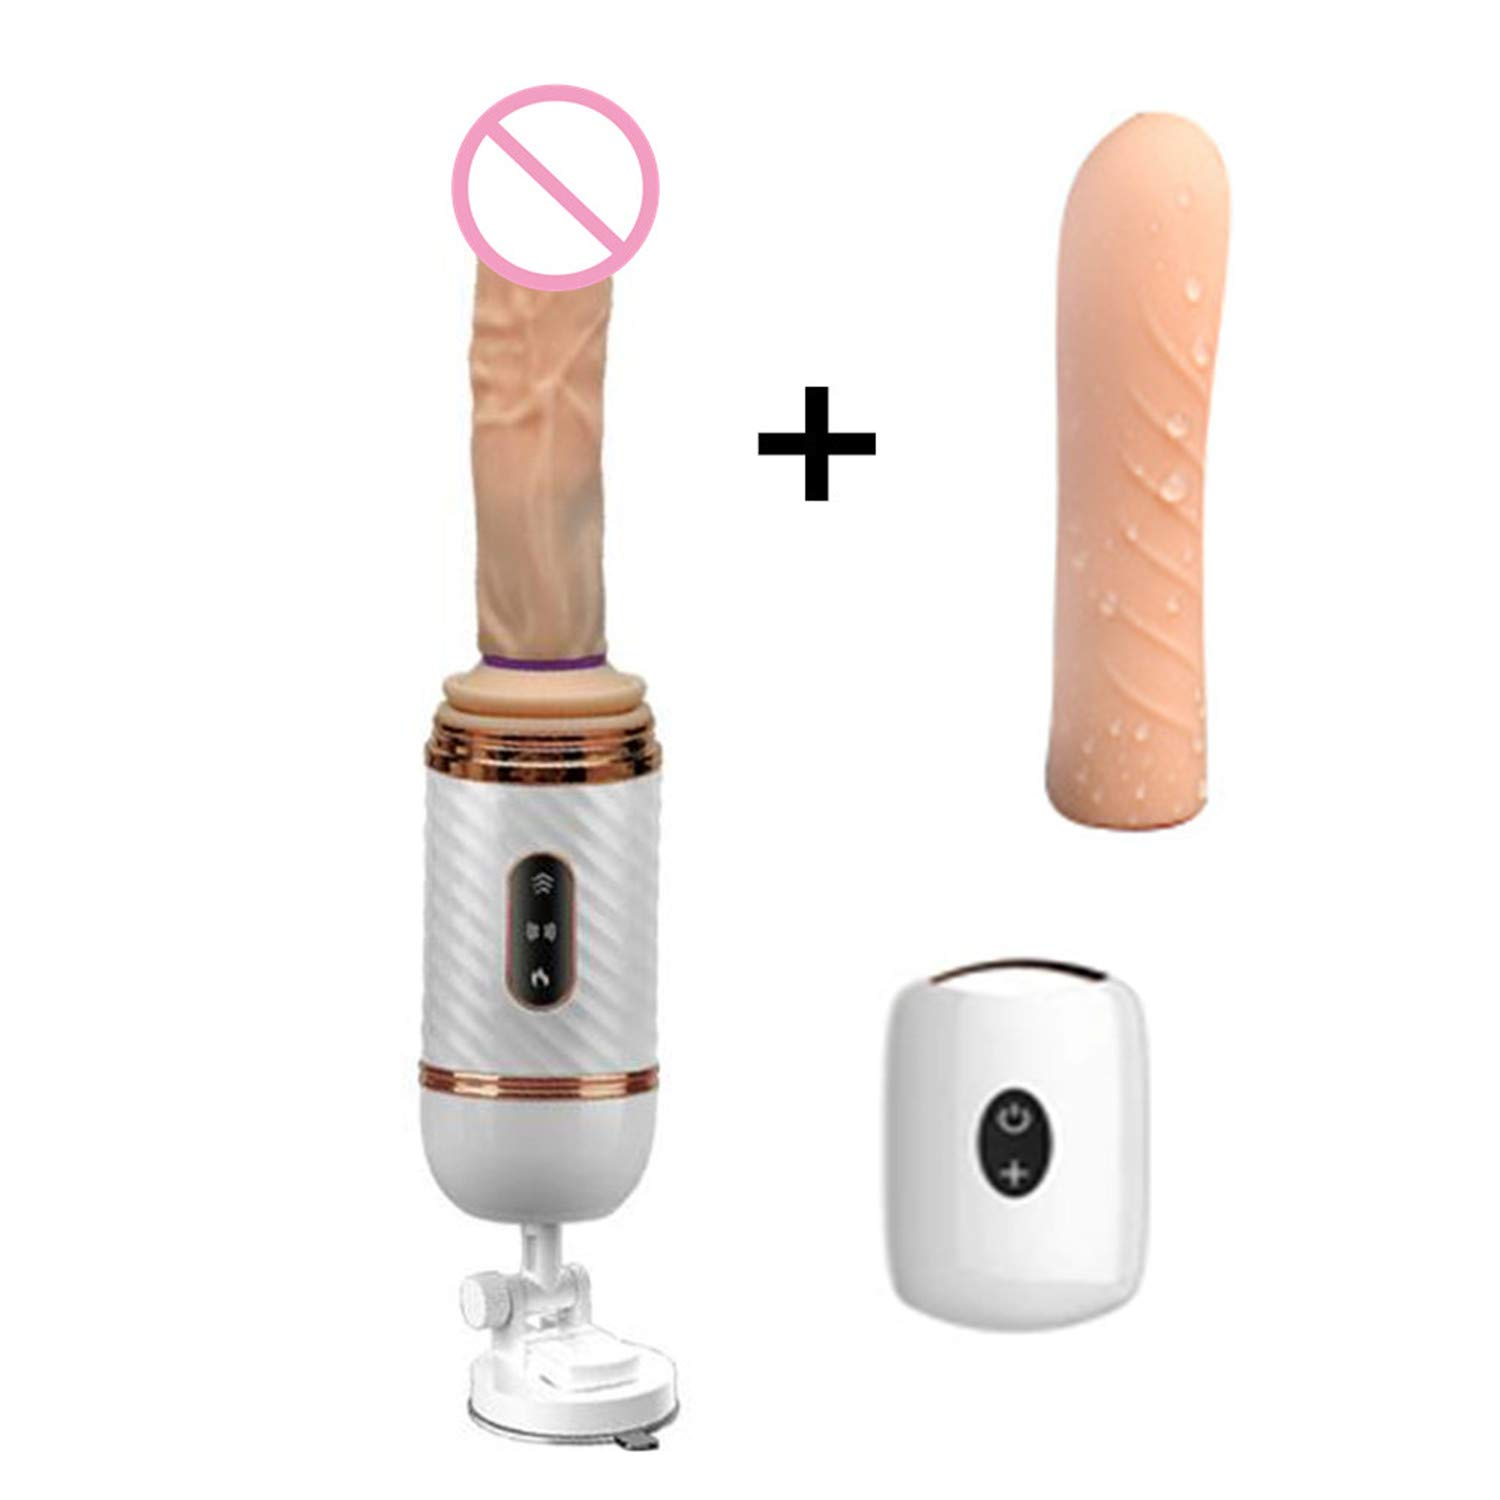 Wireless Remote Control Heating Telescopic Dildo Suction Cup Vi-brator Vagina G-Spot Masturbator Adult Anal Sex Toys for Woman Option Two